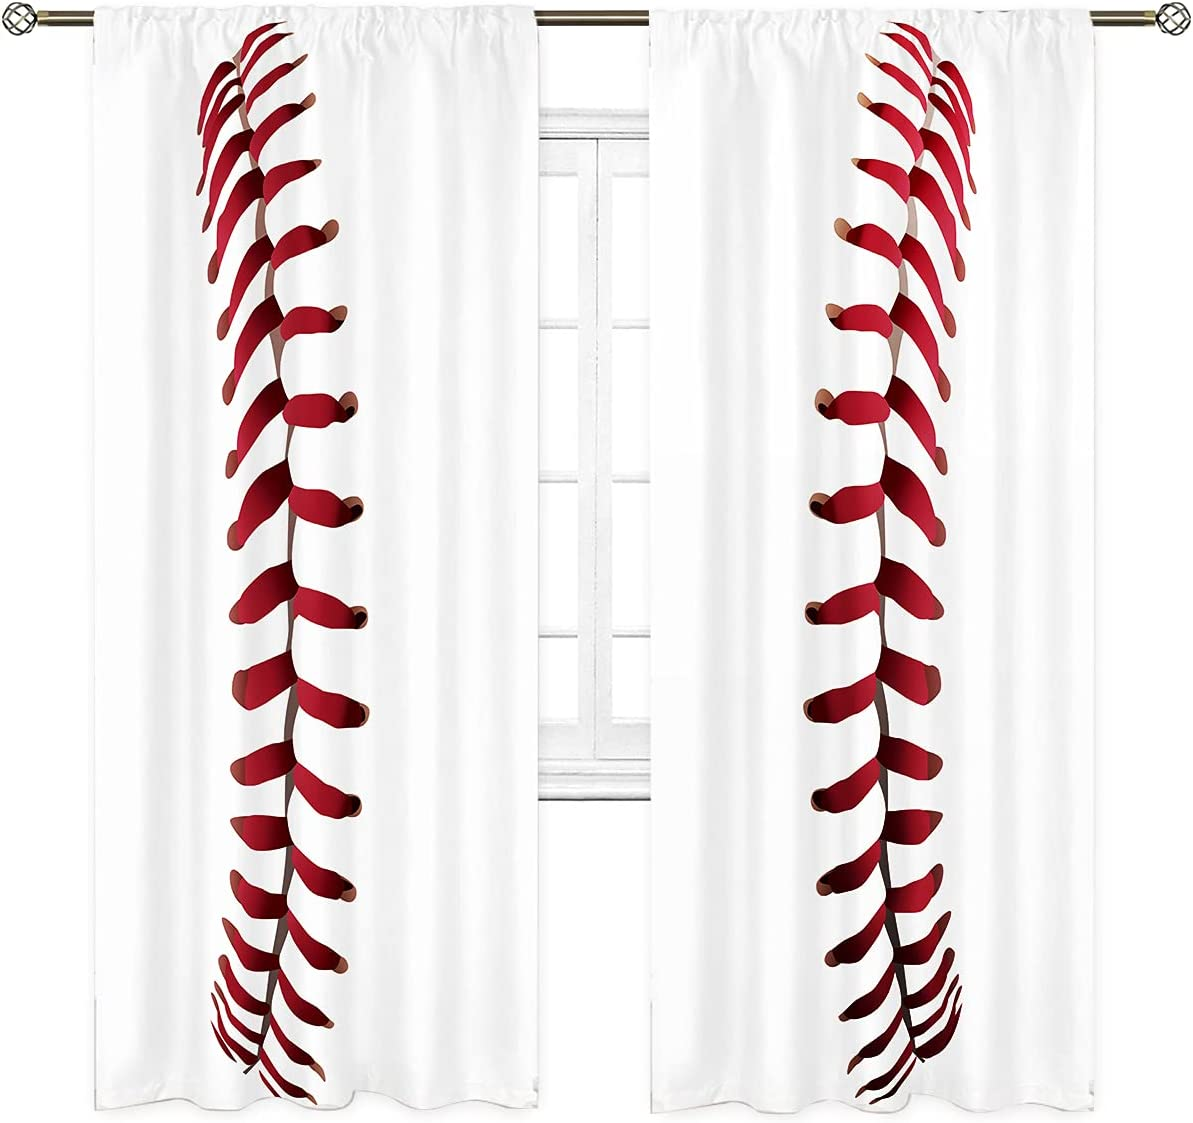 Cinbloo Sports Fort Worth Mall Living Room Baseball Pocket Pink Red Curtains Phoenix Mall Rod